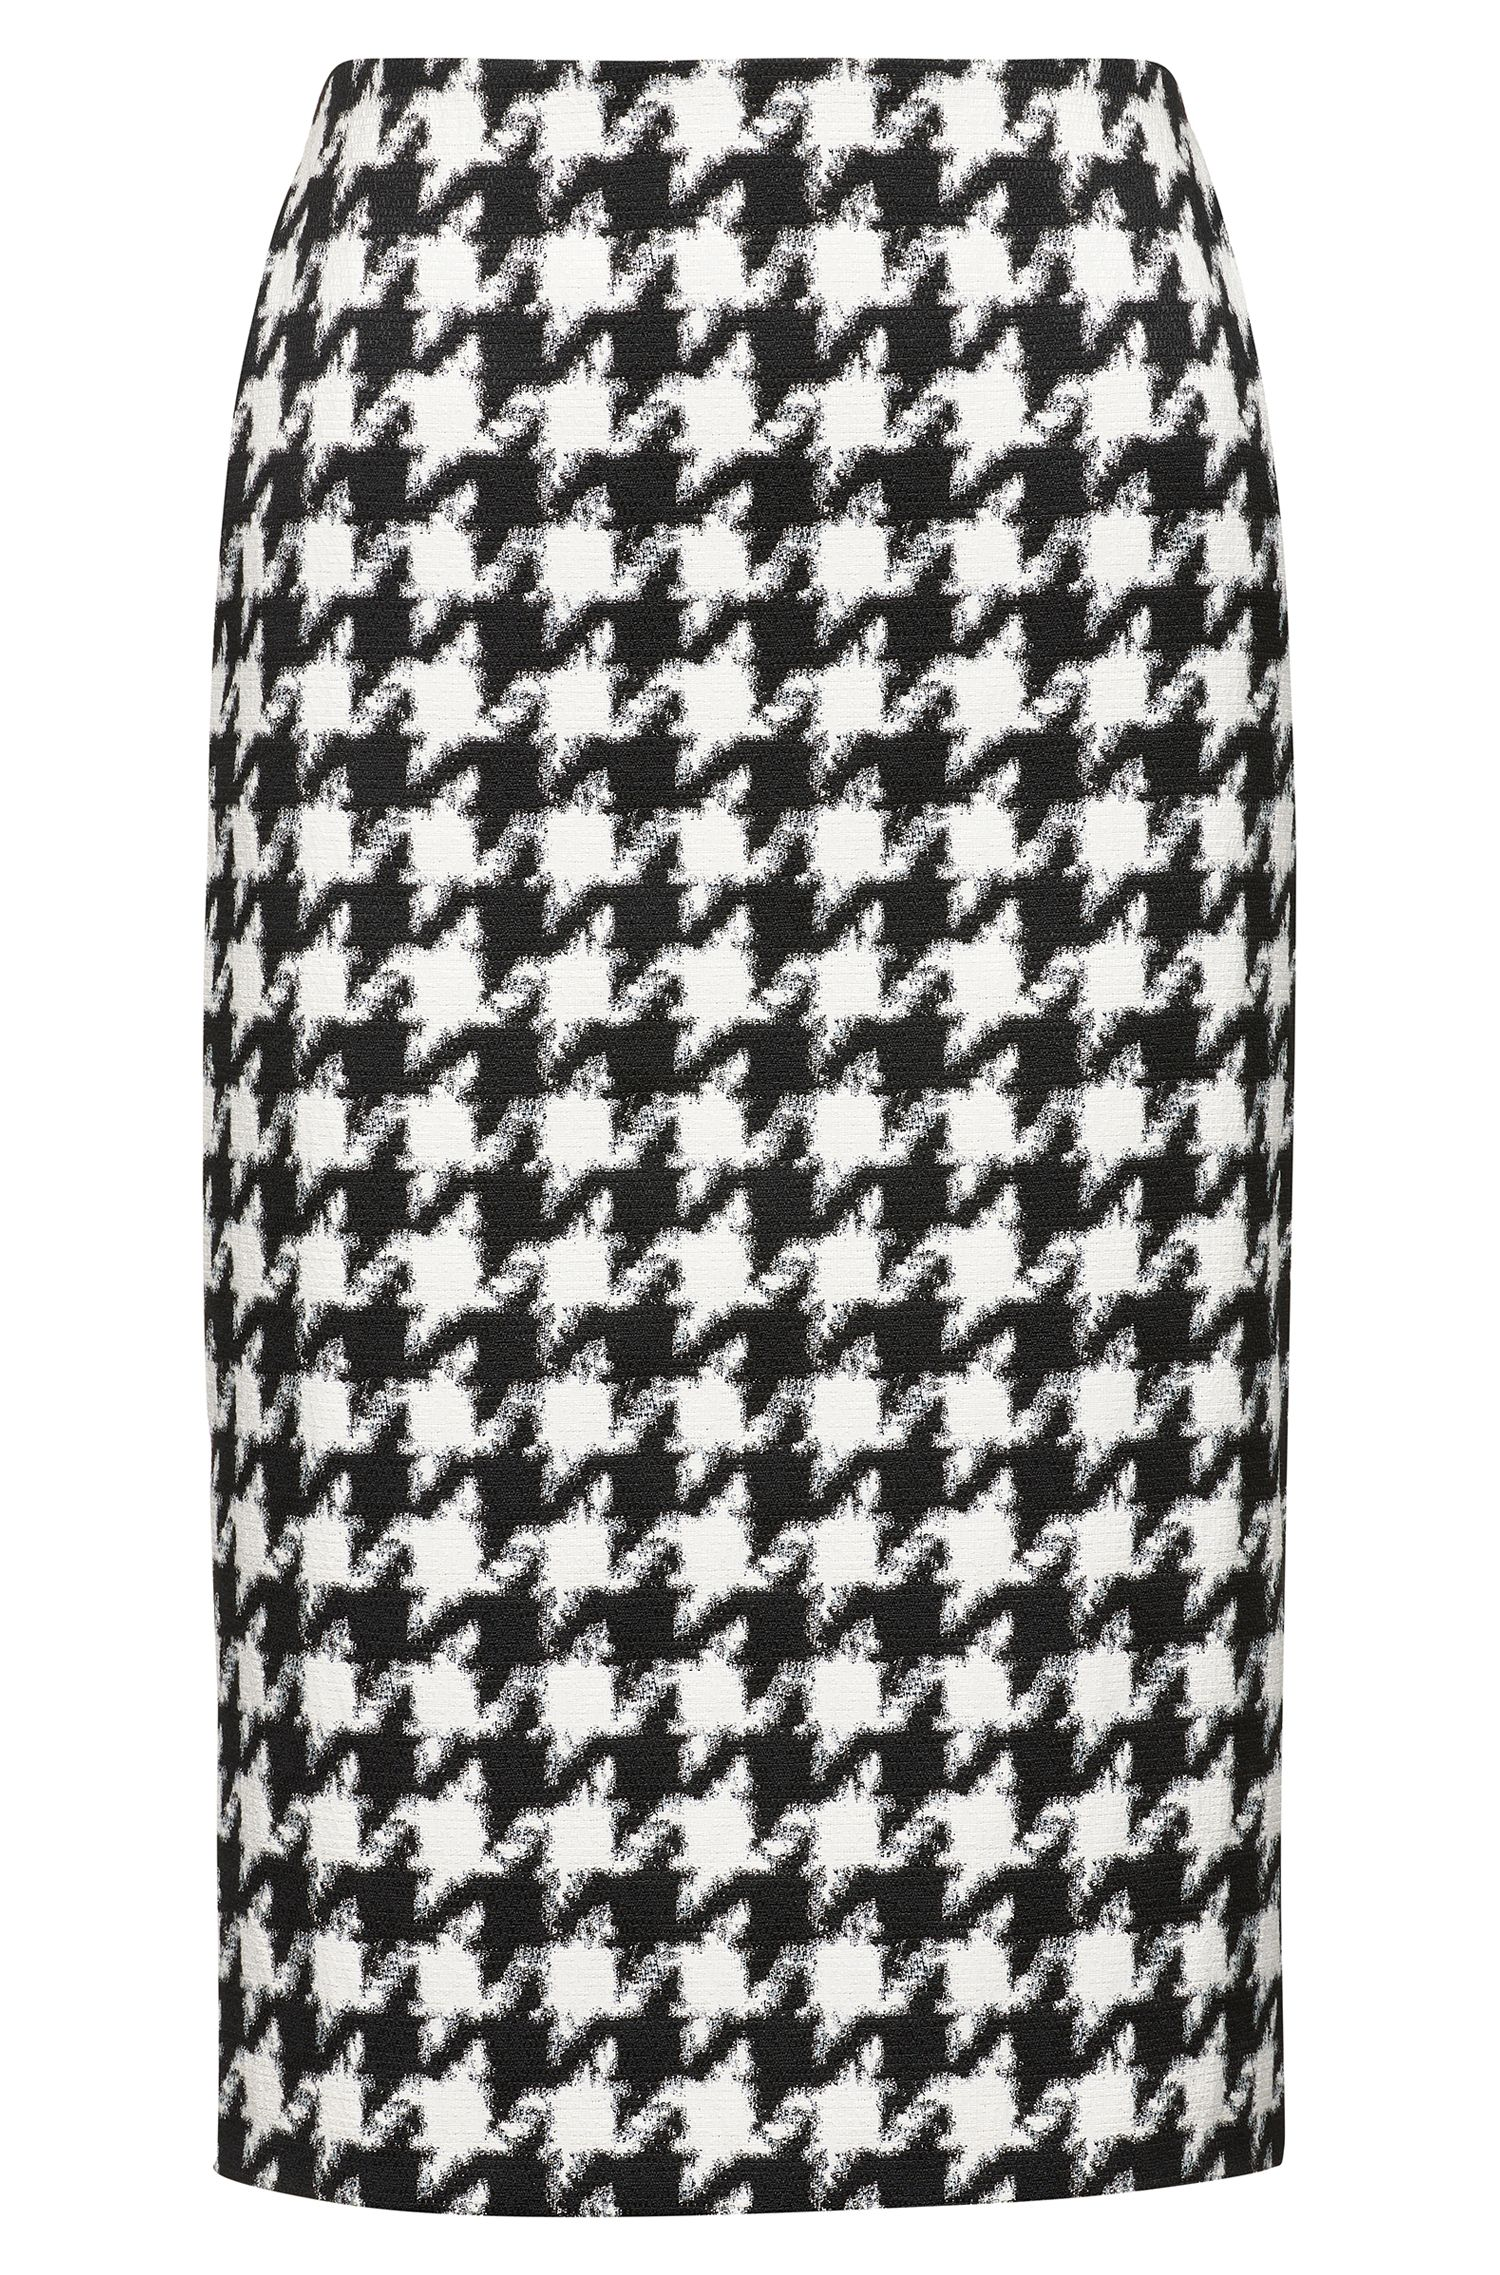 Midi-length pencil skirt with oversized houndstooth check pattern, Patterned